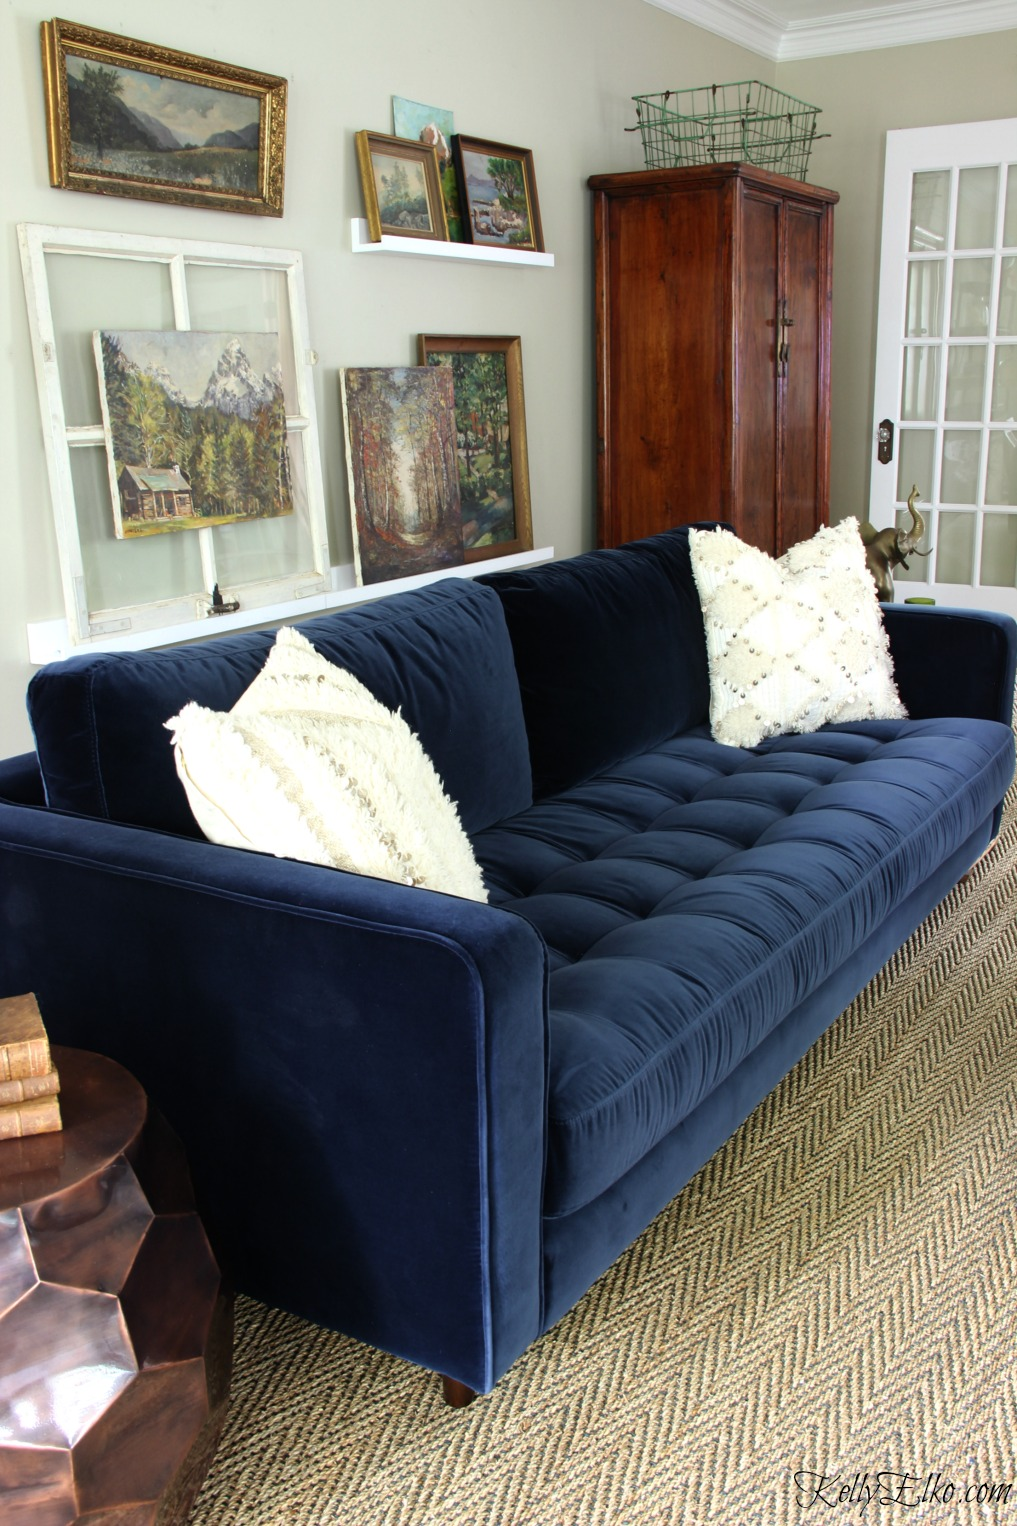 Blue is a Neutral - New Blue Sofa - Kelly Elko